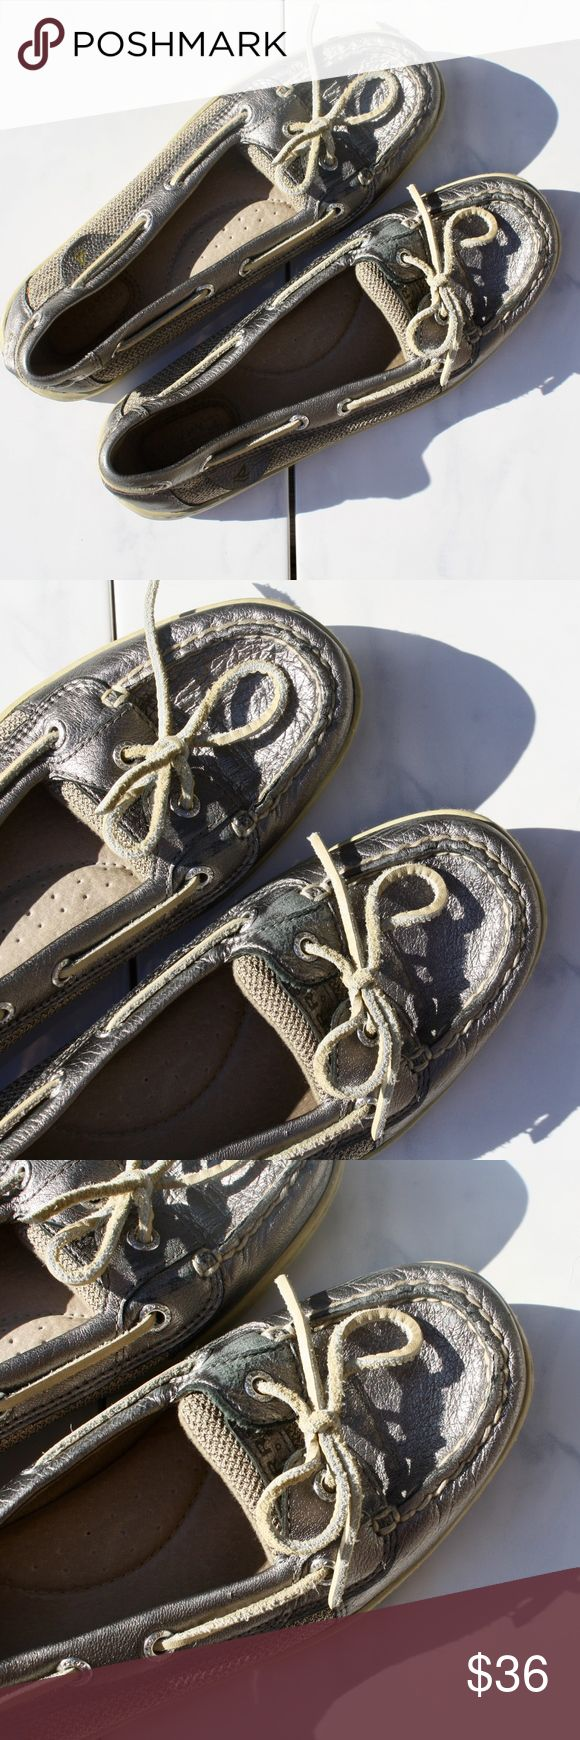 Sperry Angelfish Pewter Metallic boat shoe In good used condition. Sperry Shoes Flats & Loafers